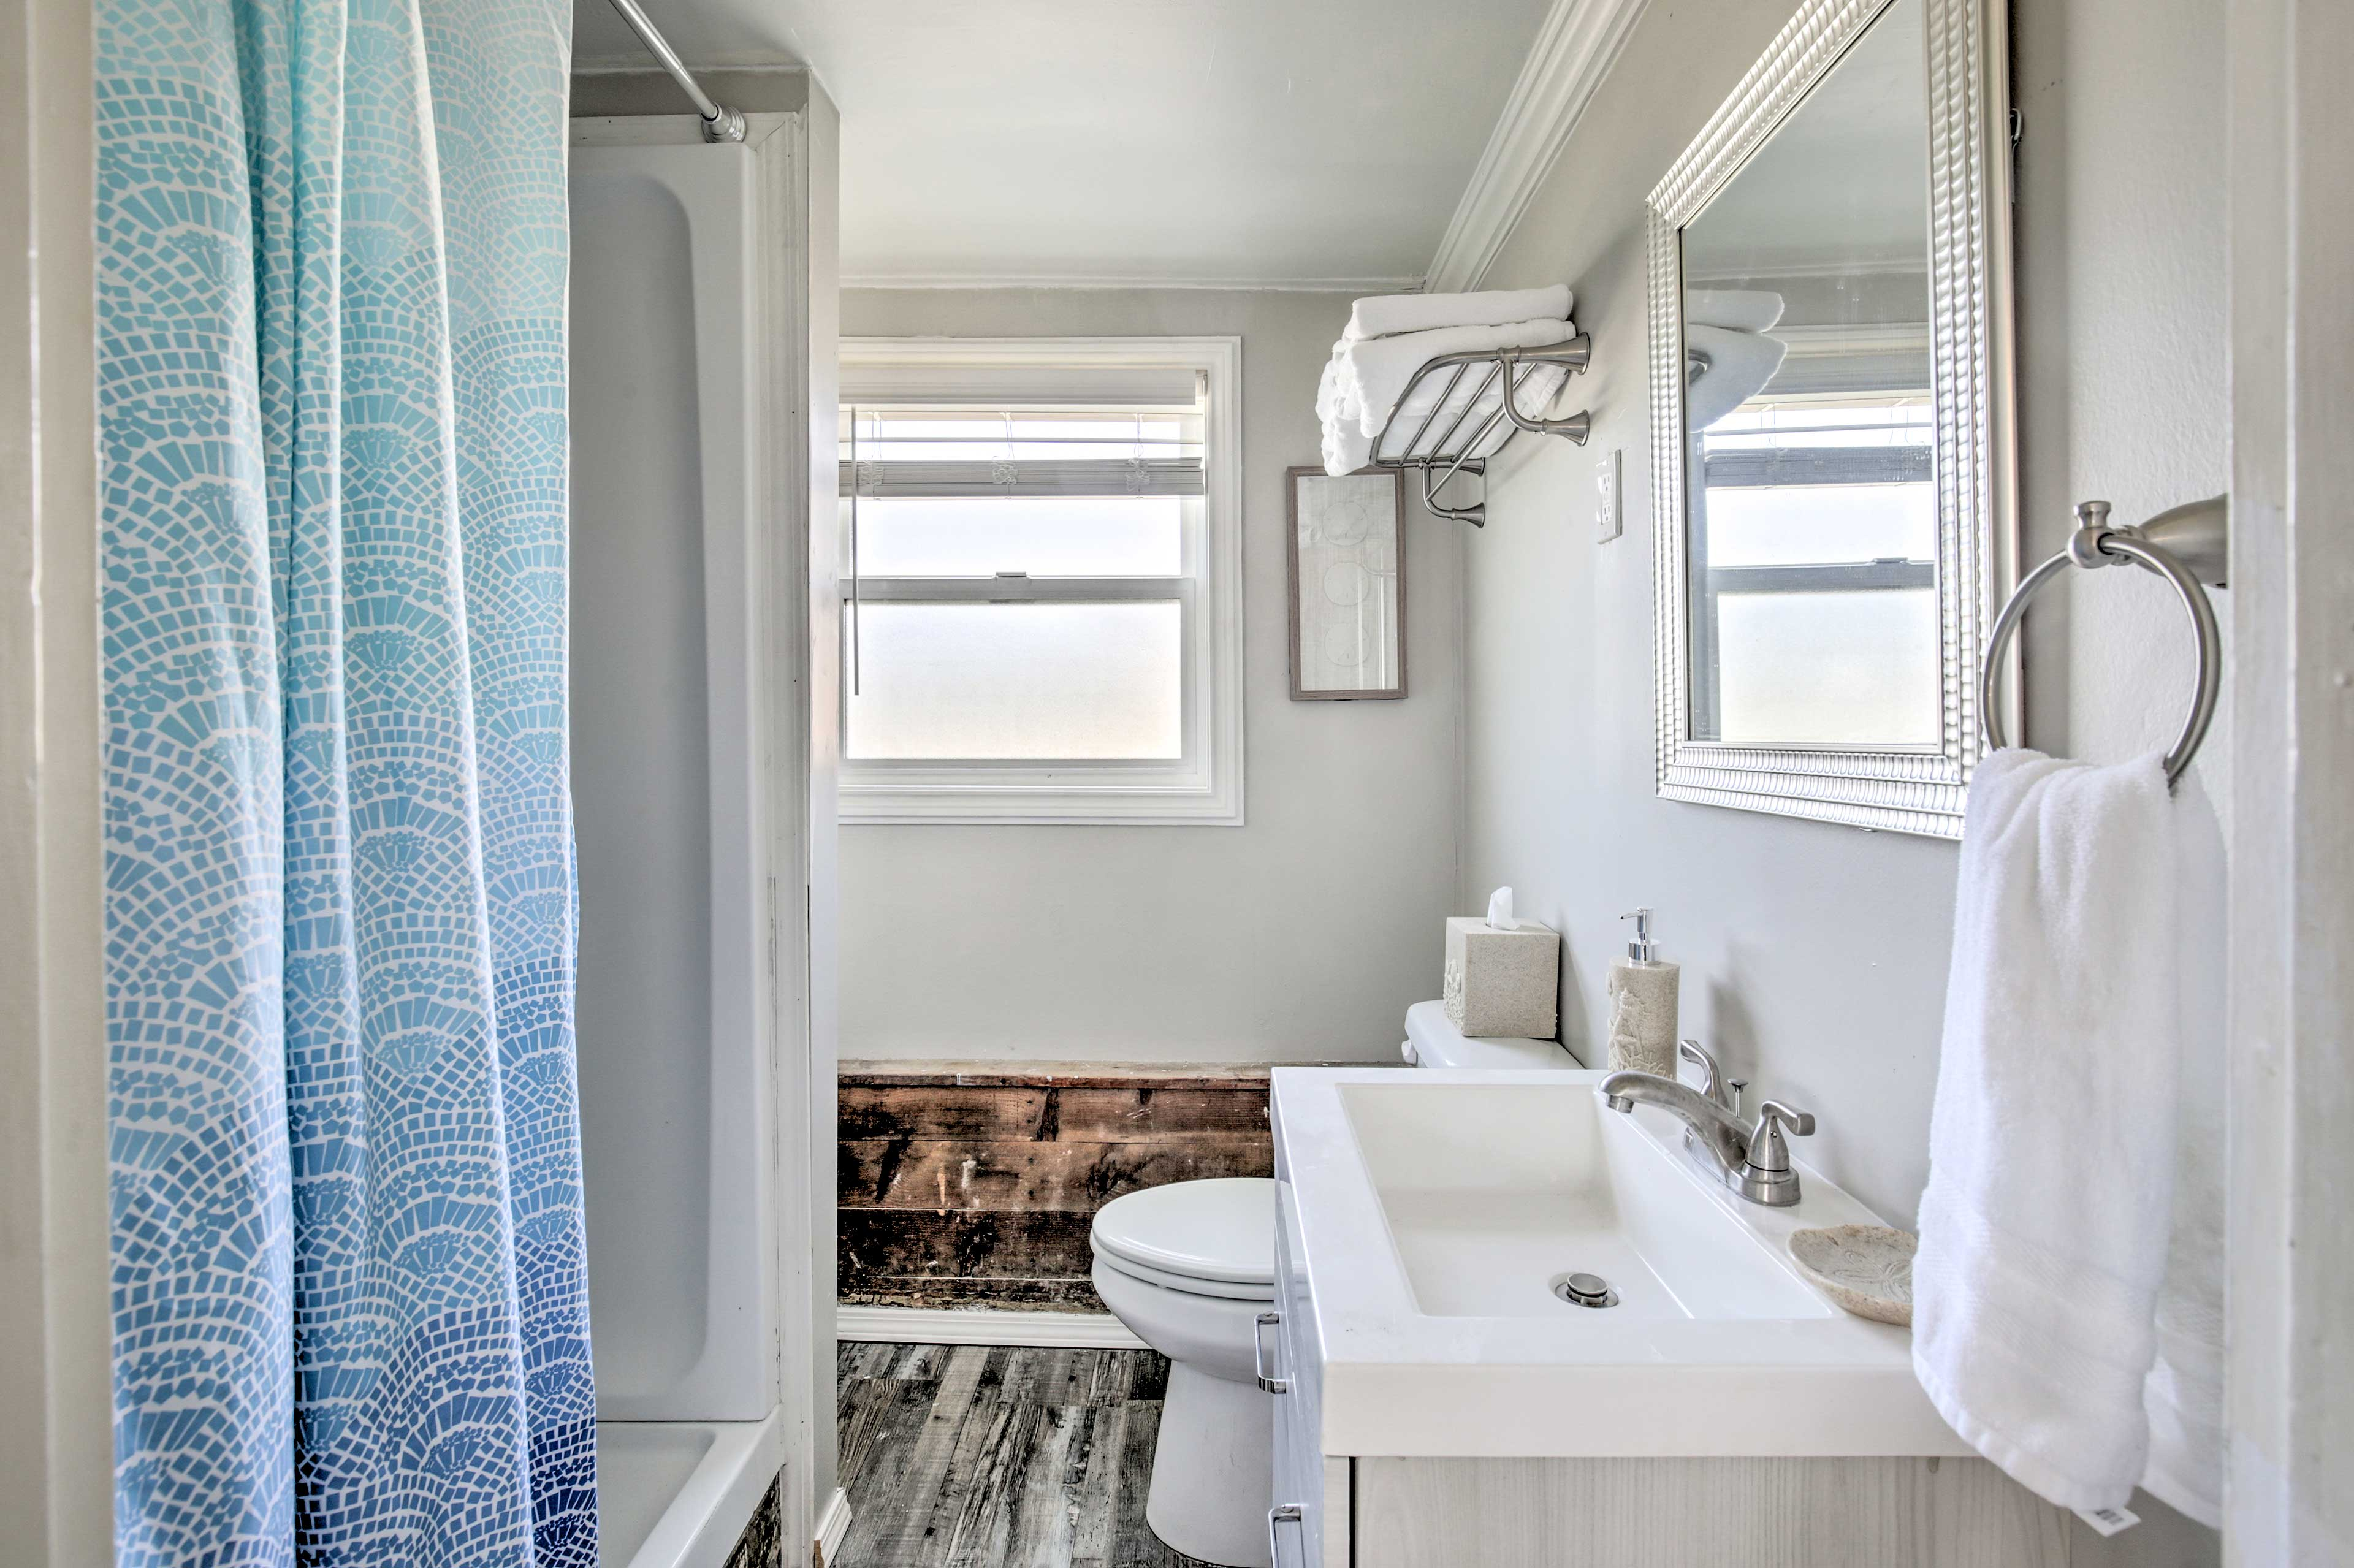 The modern style continues in the full bathroom, complete with a shower.